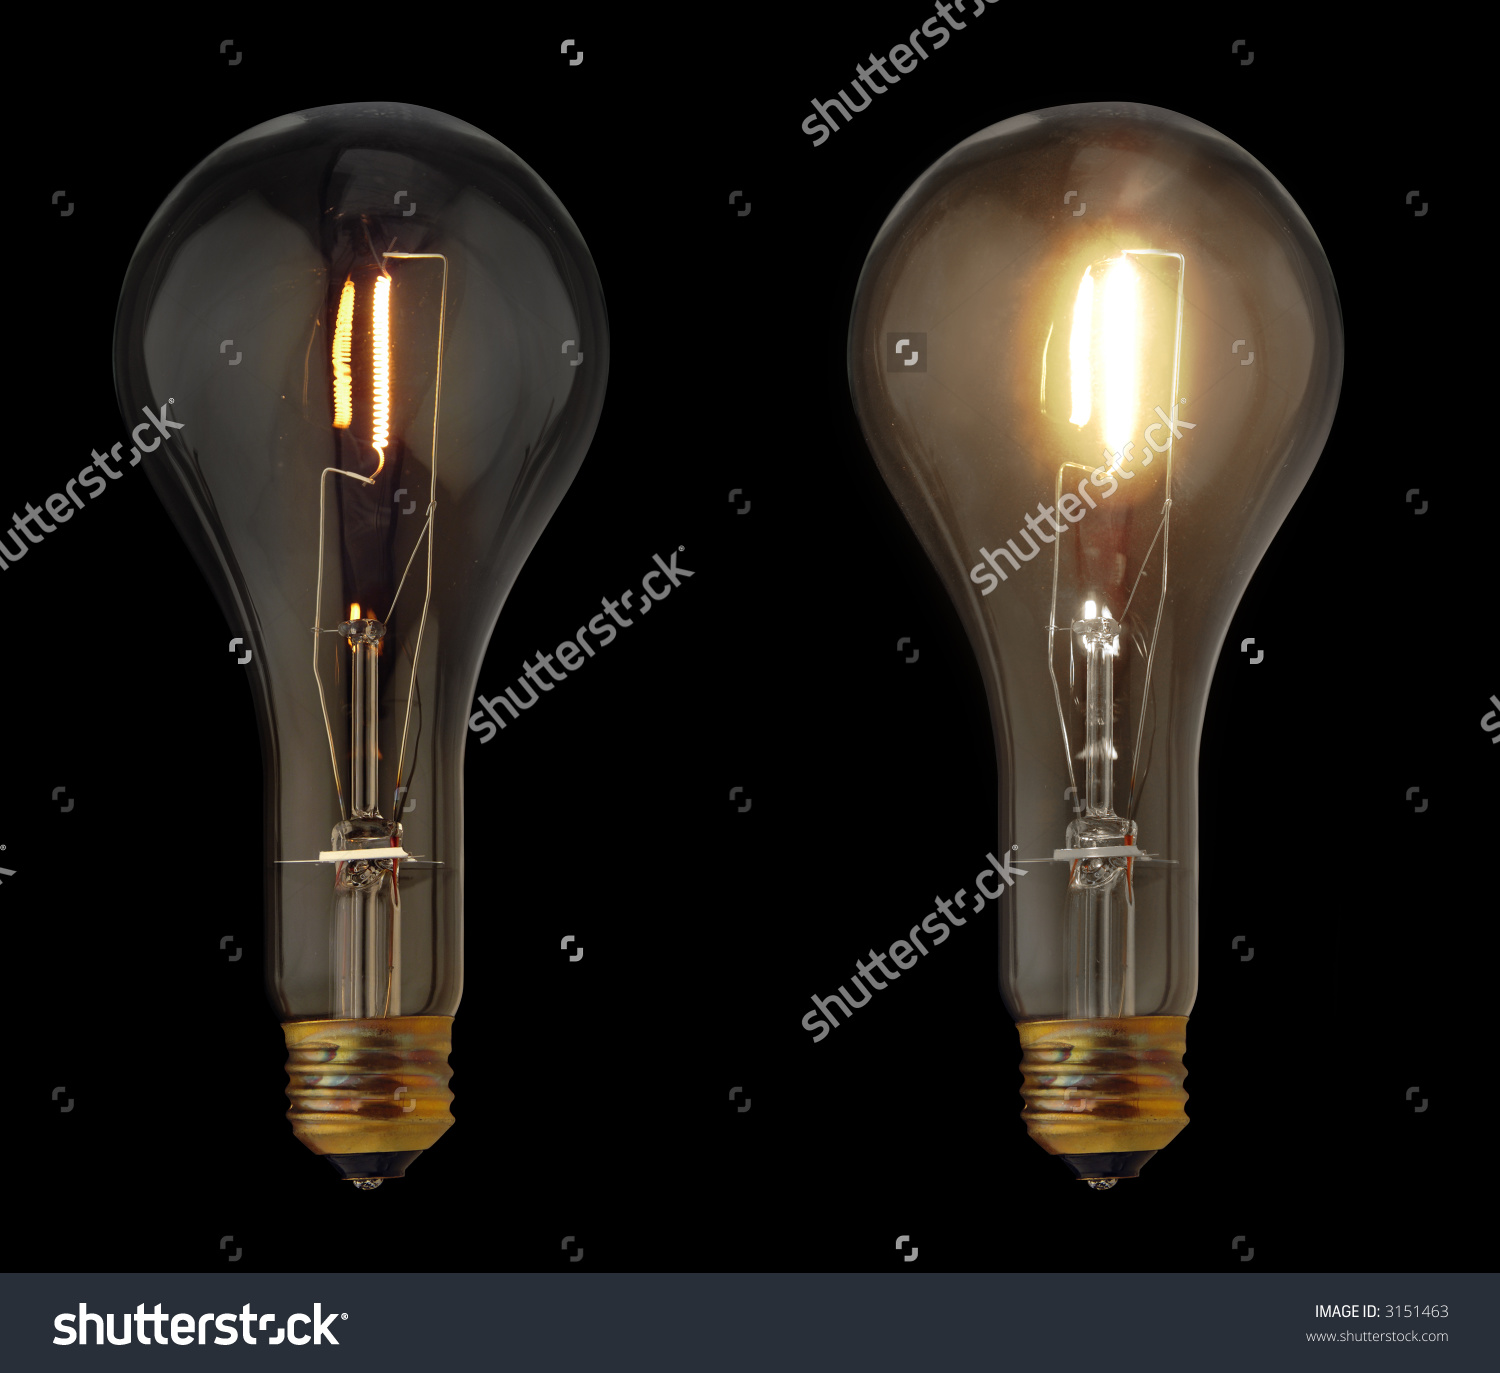 Light bulbs in a box clipart.